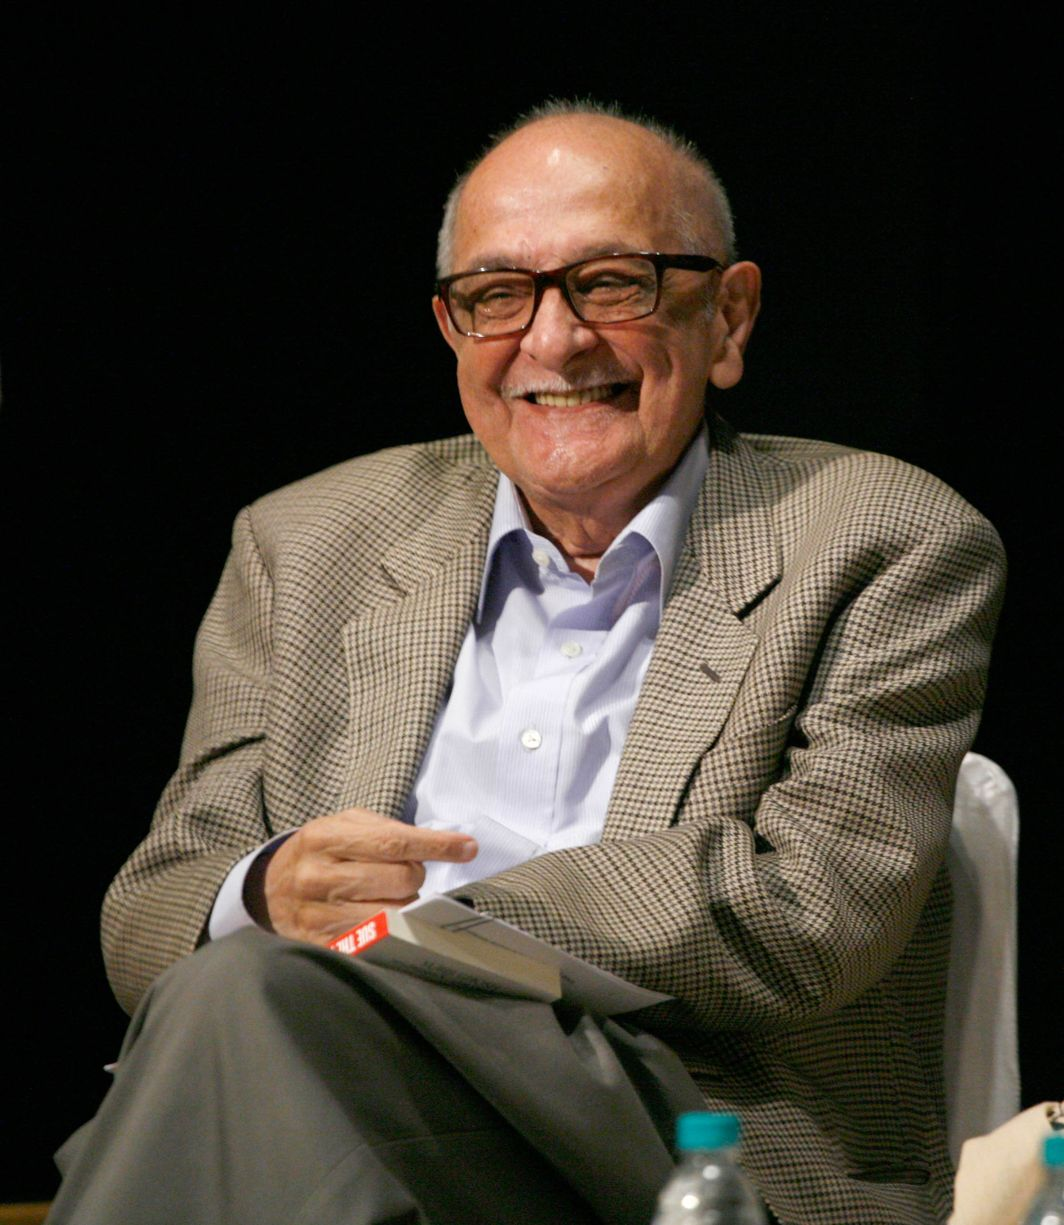 The sharp-edged debate between jurist Fali Nariman and Upendra Baxi over the Bhopal gas tragedy (above) remained civilised—far removed from today's vulgar dissonance